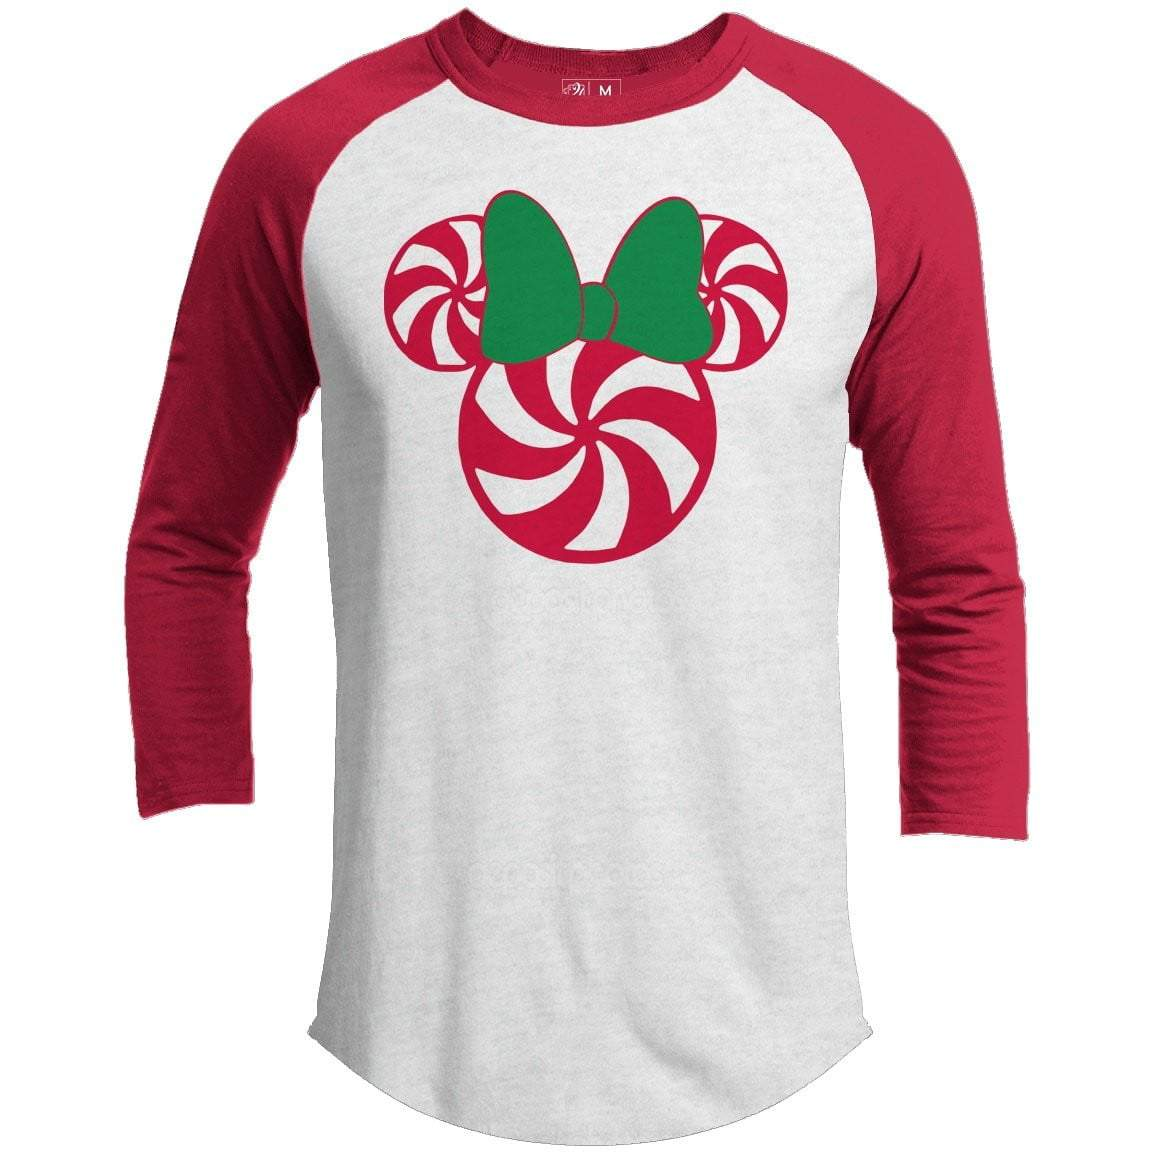 Mrs. Mouse Premium Christmas Raglan